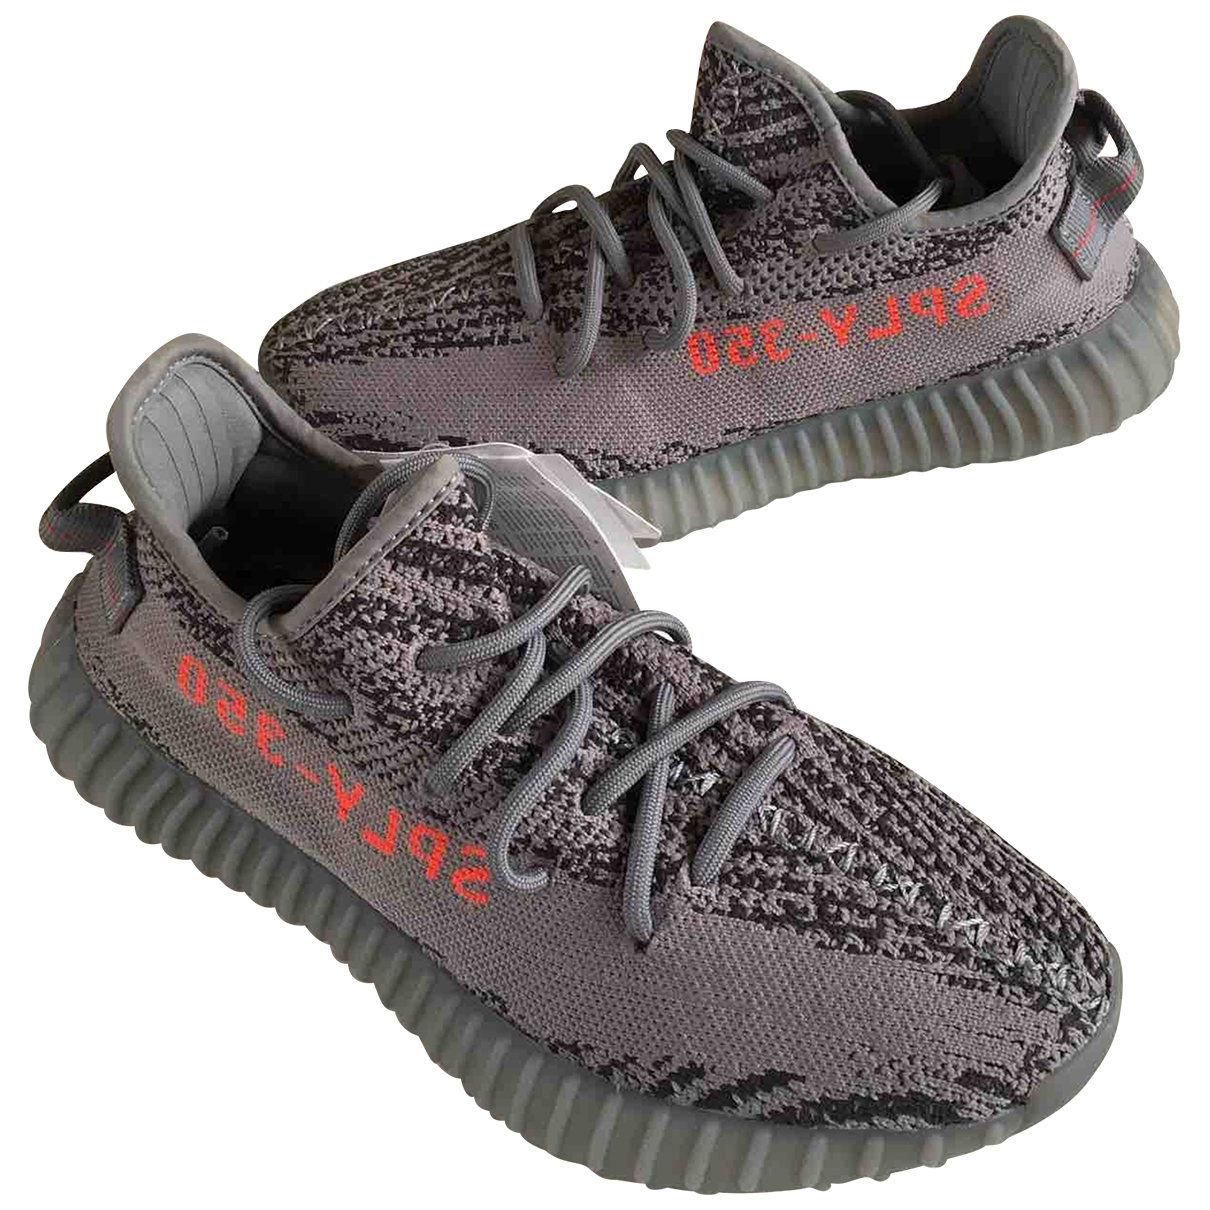 Yeezy X Adidas Boost 350 V2 Grey Trainers for Women 7 US